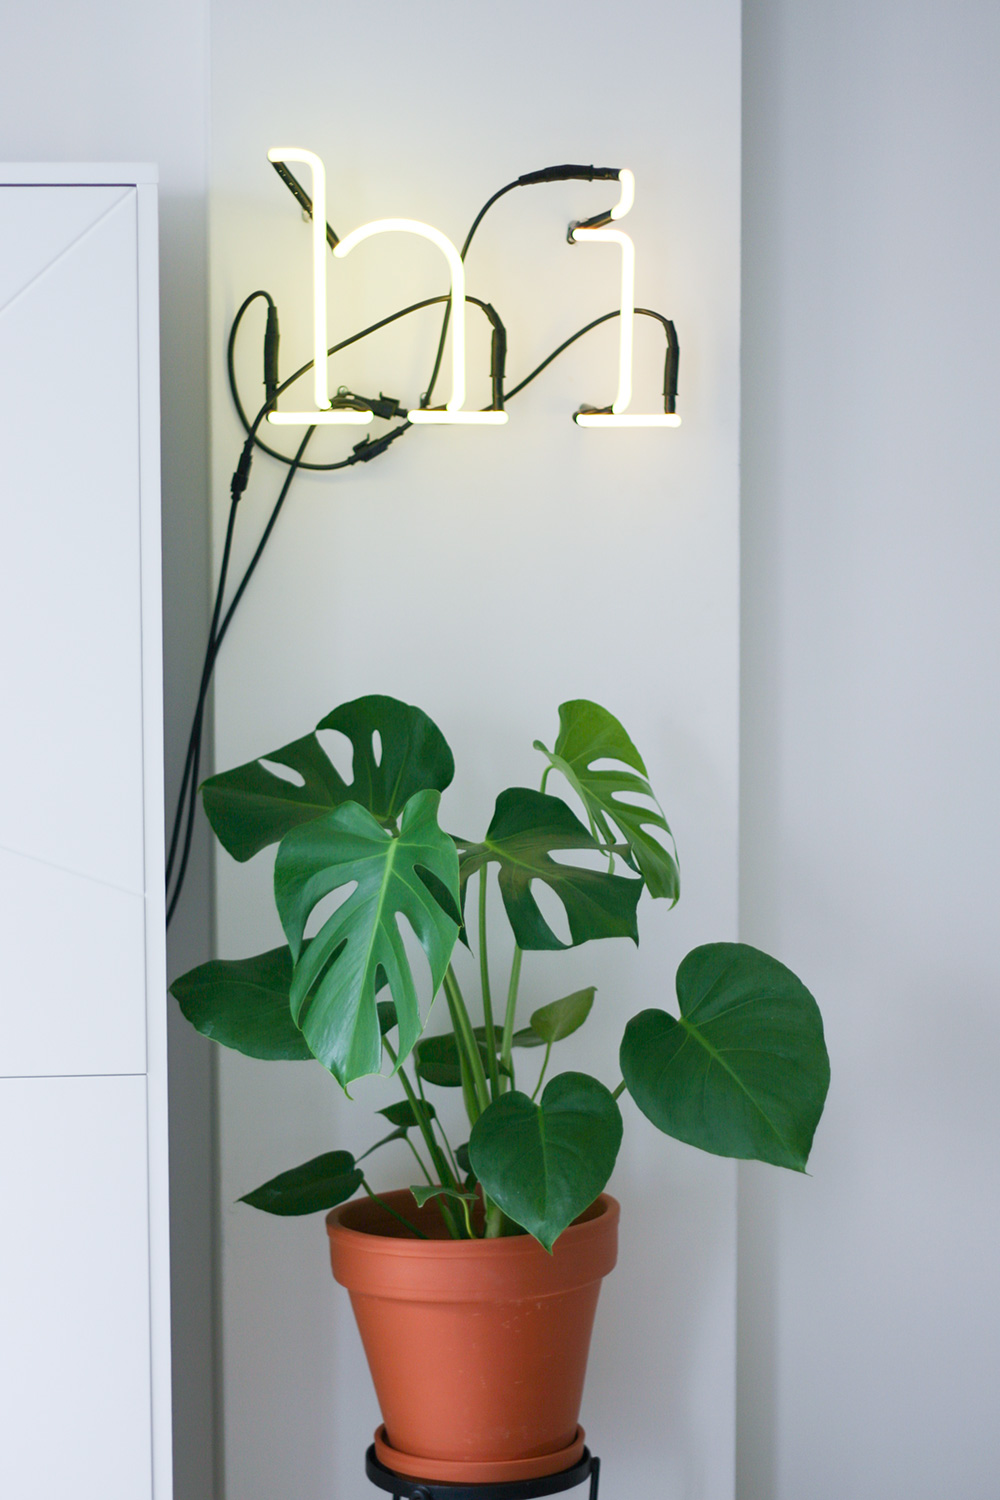 seletti-neon-letters-fonq-urban-jungle-monstera-4